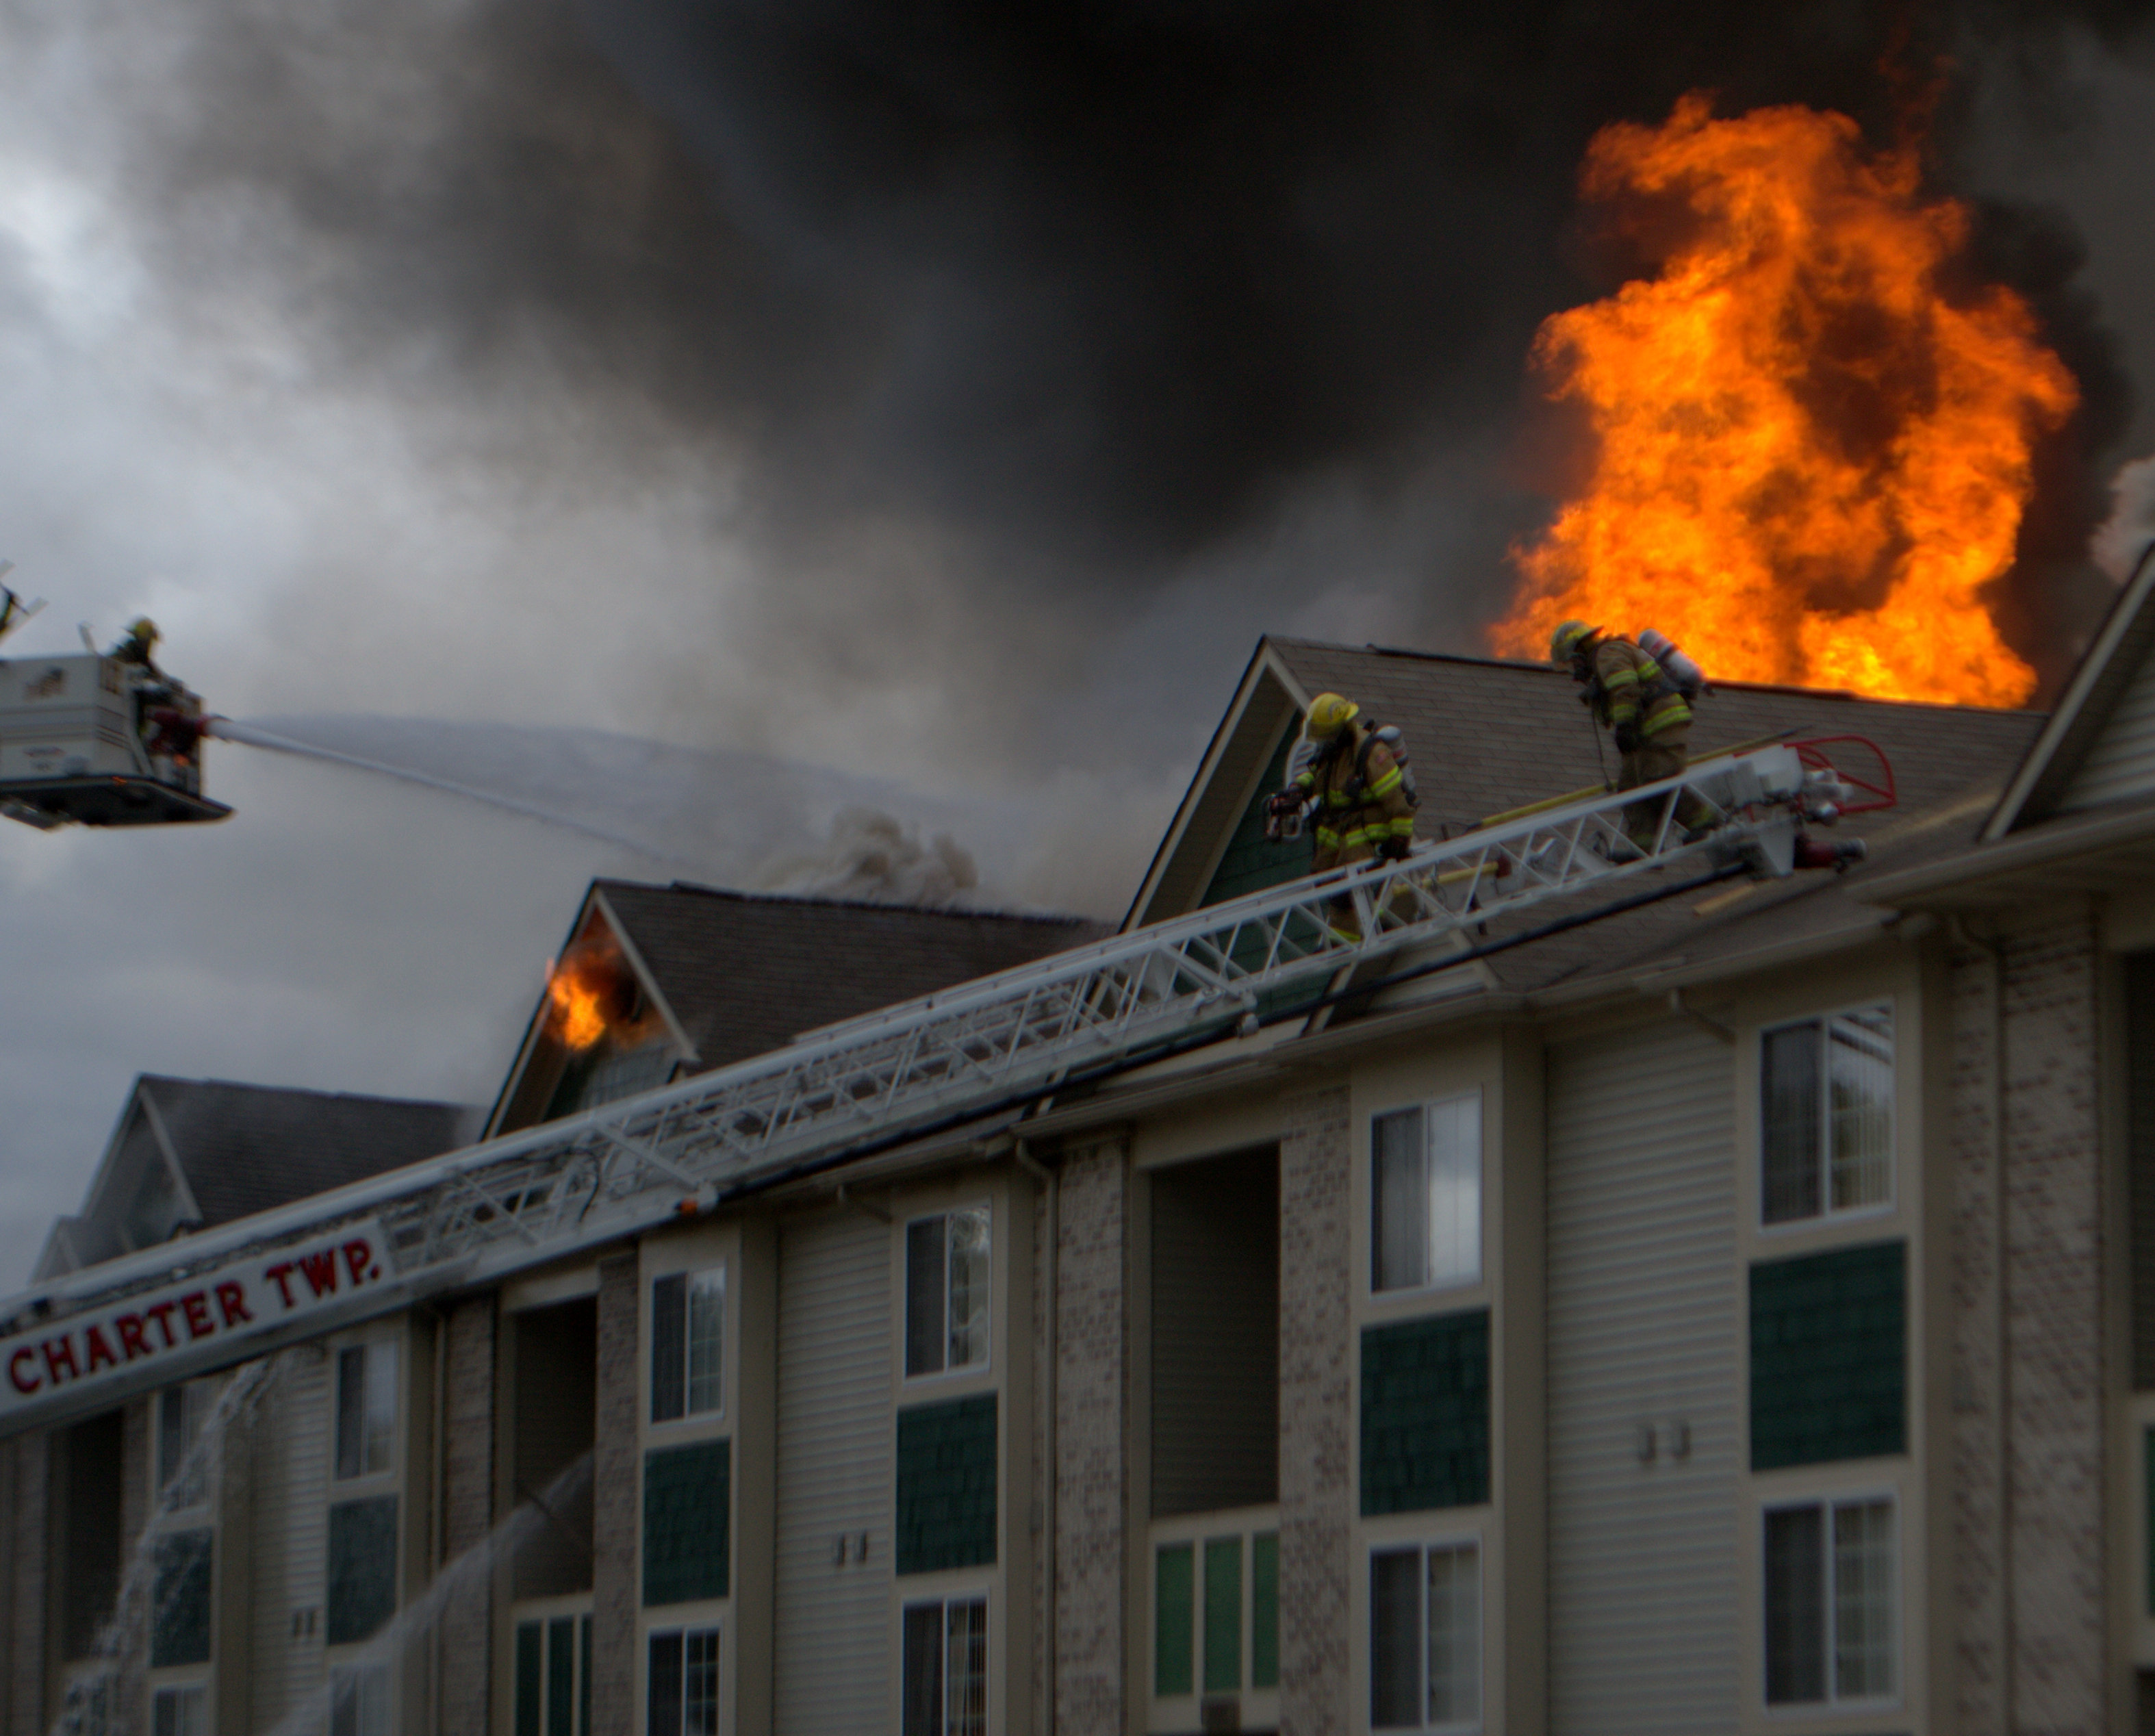 Photo 5 Of 49 | Fire At Clearview Apartments In Holland October 10, 2012 |  1450 99.7 WHTC